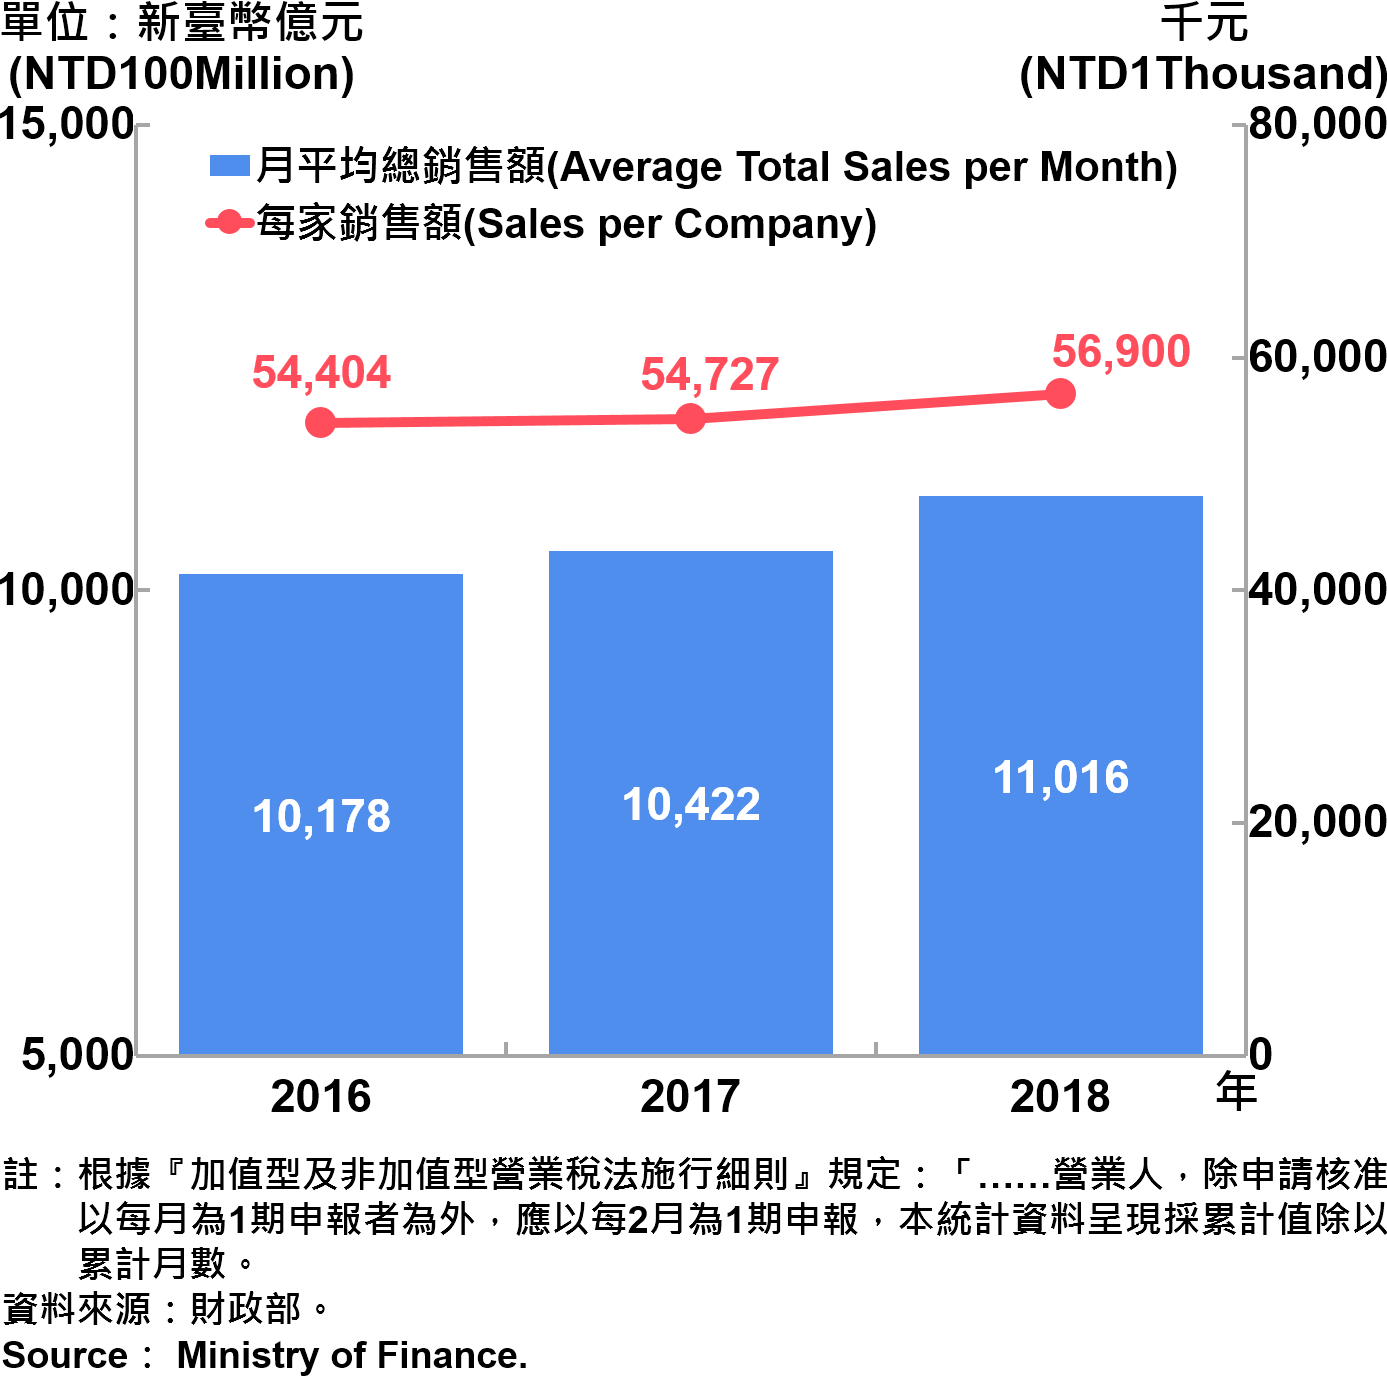 臺北市公司行號銷售額—2018 Operating Income for Business Enterprises in Taipei City—2018